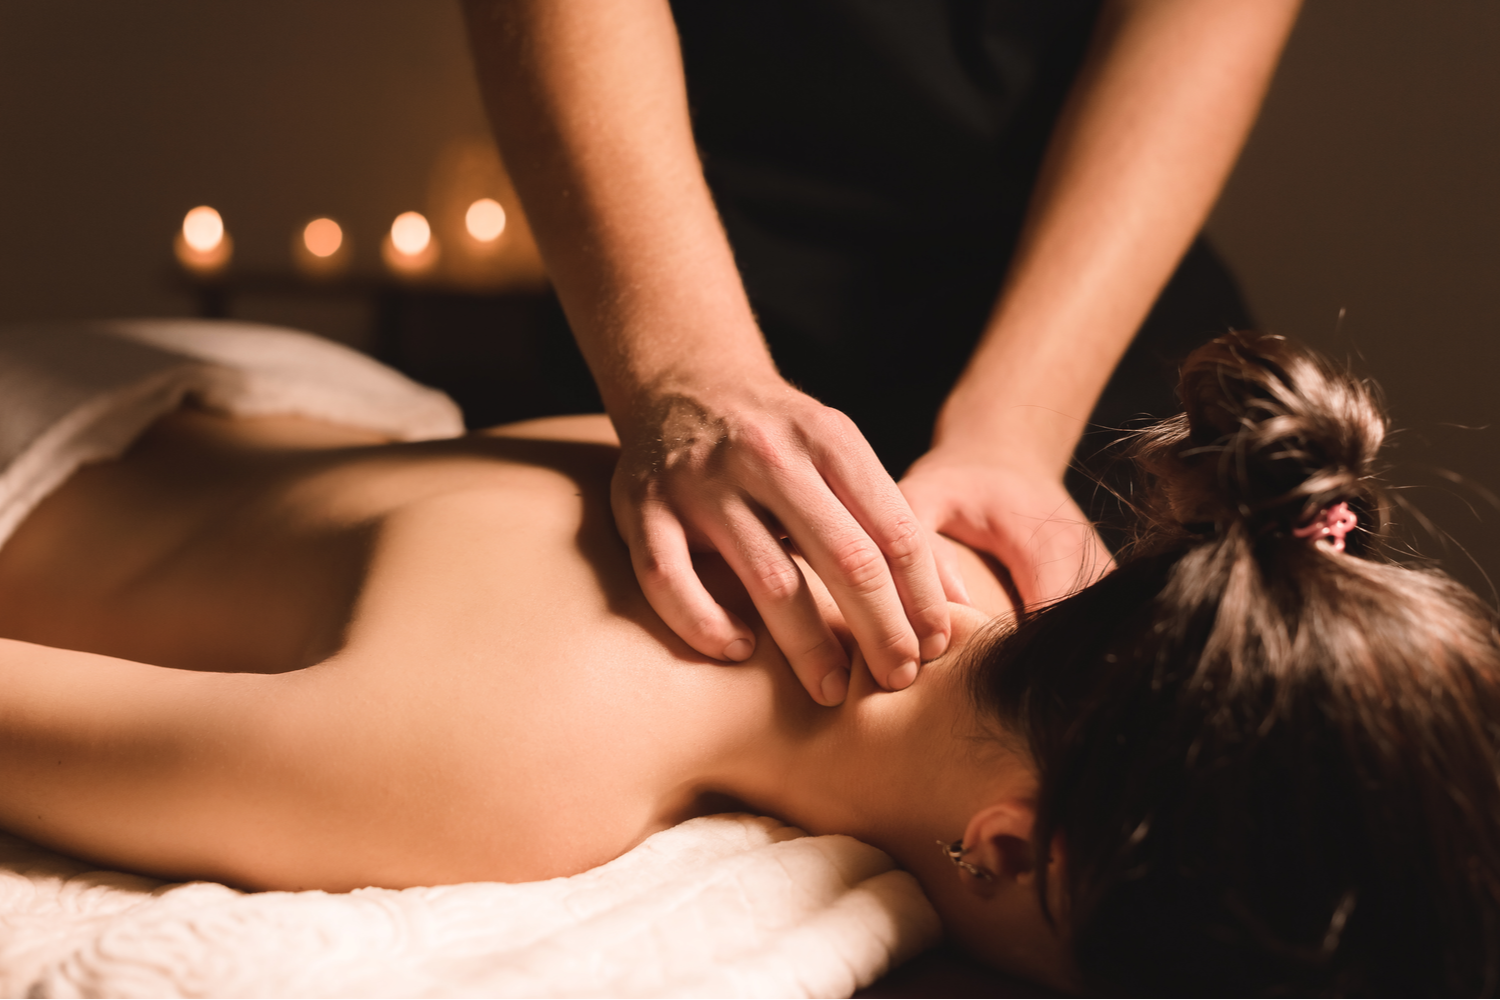 Why Massage Therapy Should Be a Regular Part of Your Wellness Routine